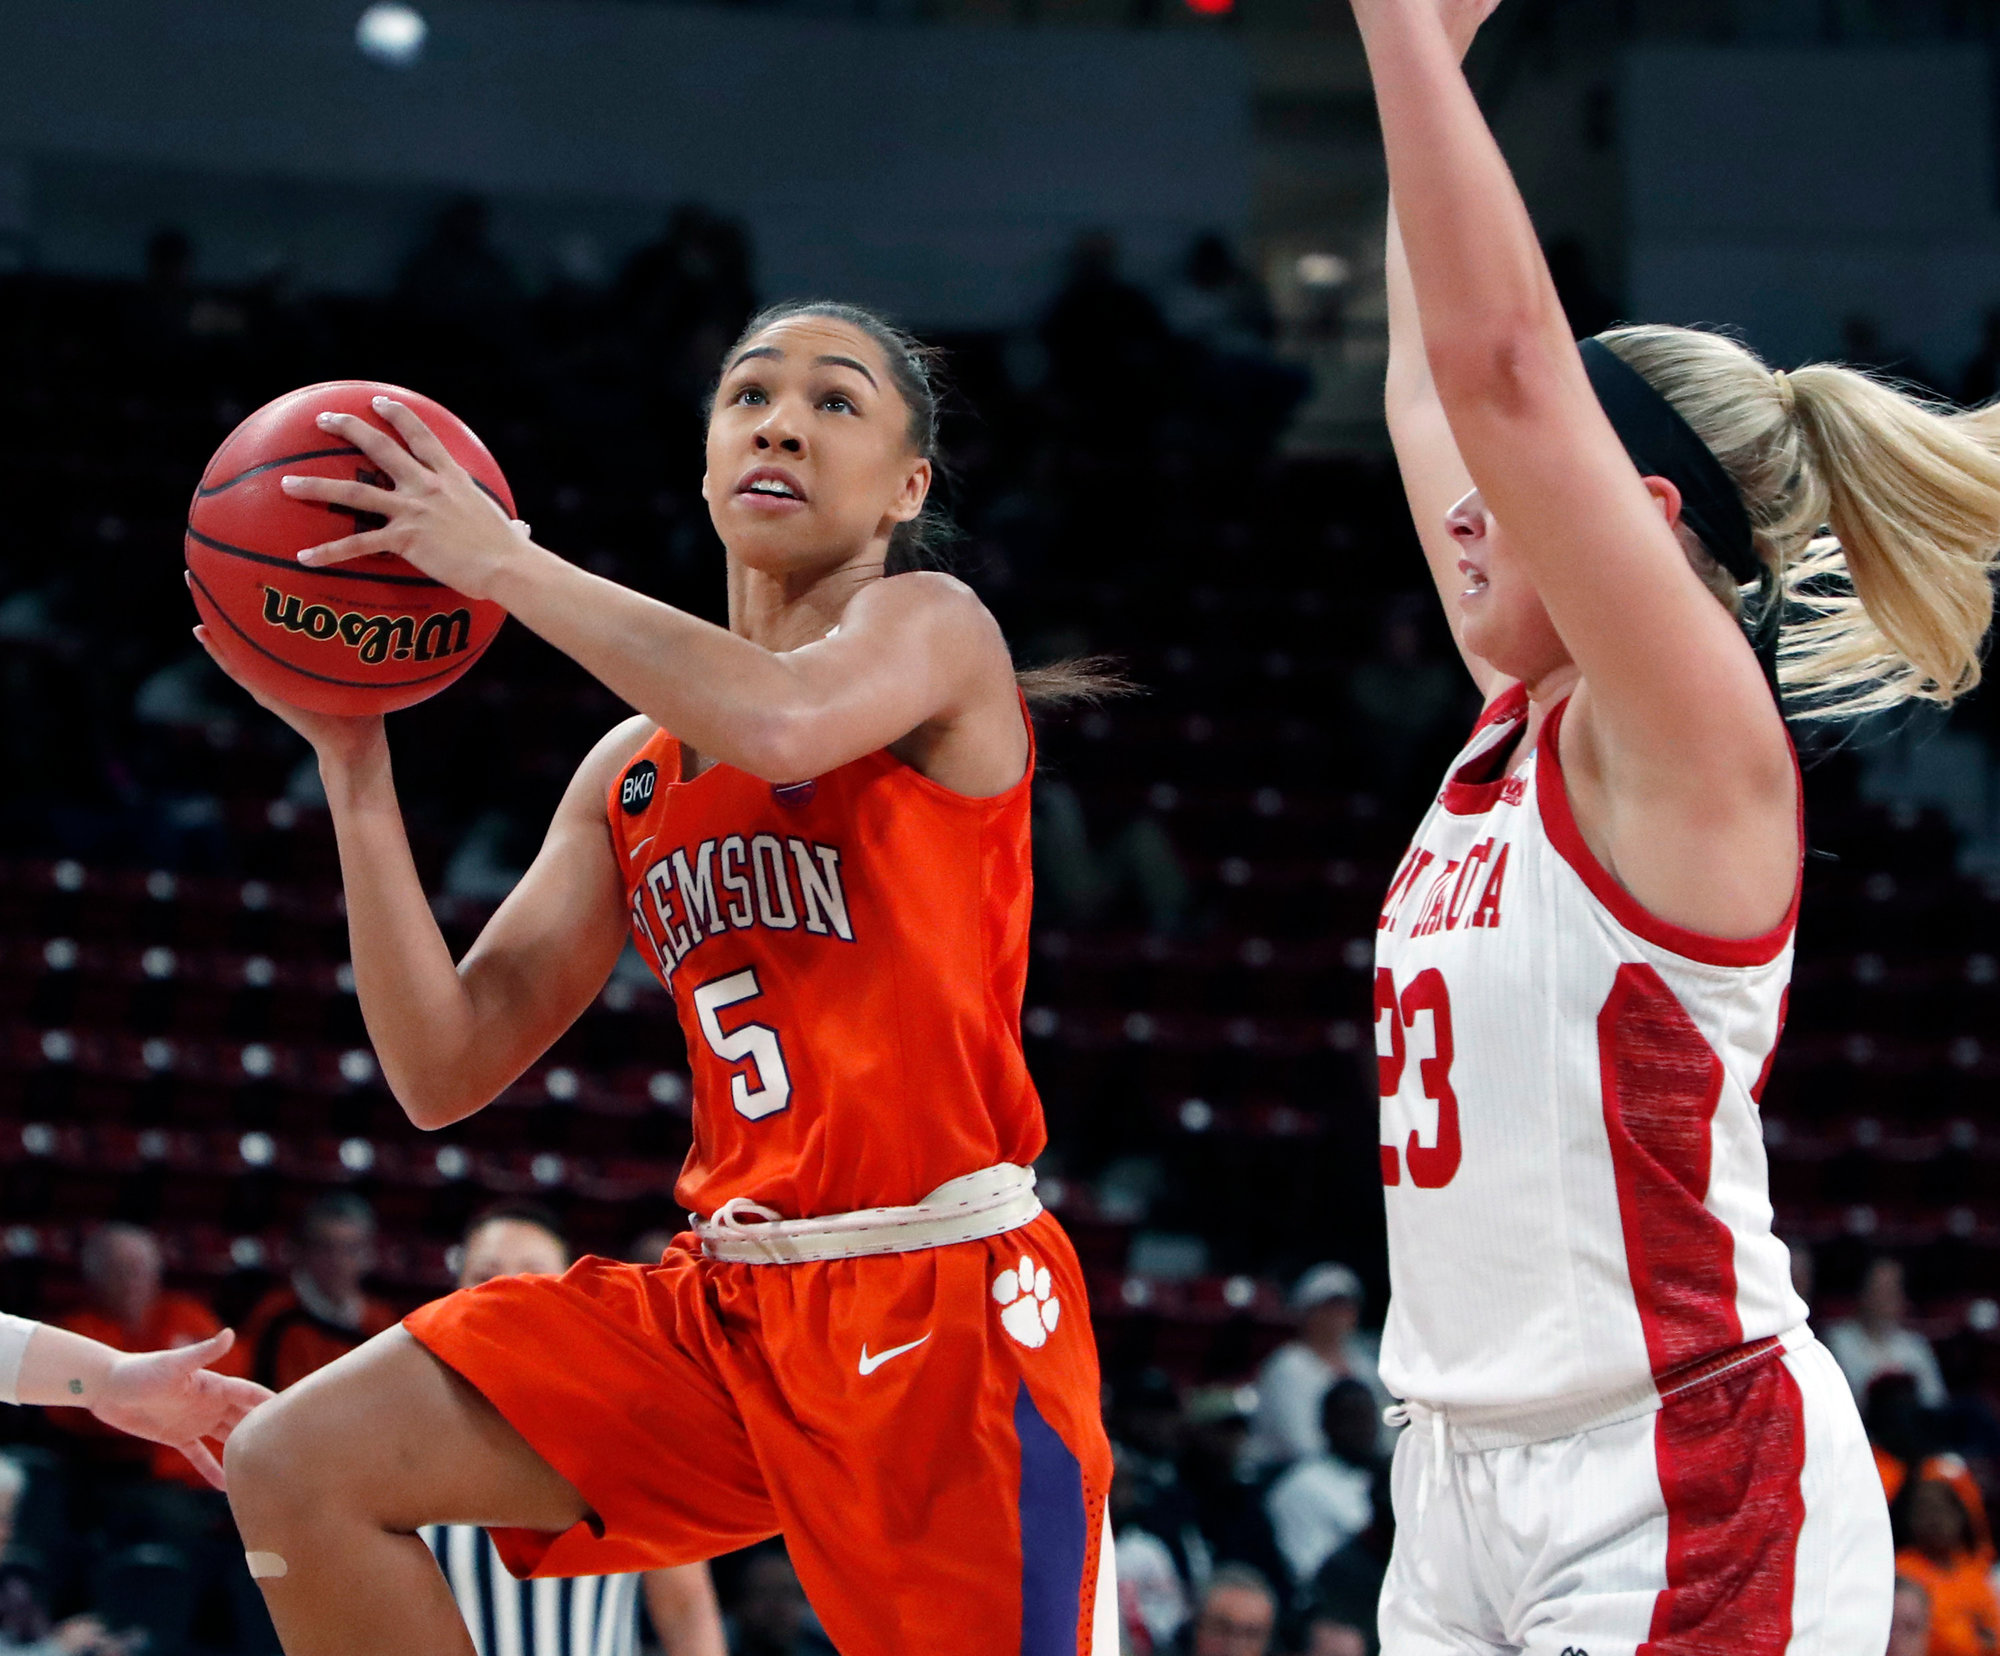 Clemson guard Danielle Edwards (5) attempts a layup while South Dakota guard Madison McKeever (23) defends during their first-round game in the NCAA Women's Tournament in Starkville, Mississippi, on Friday.